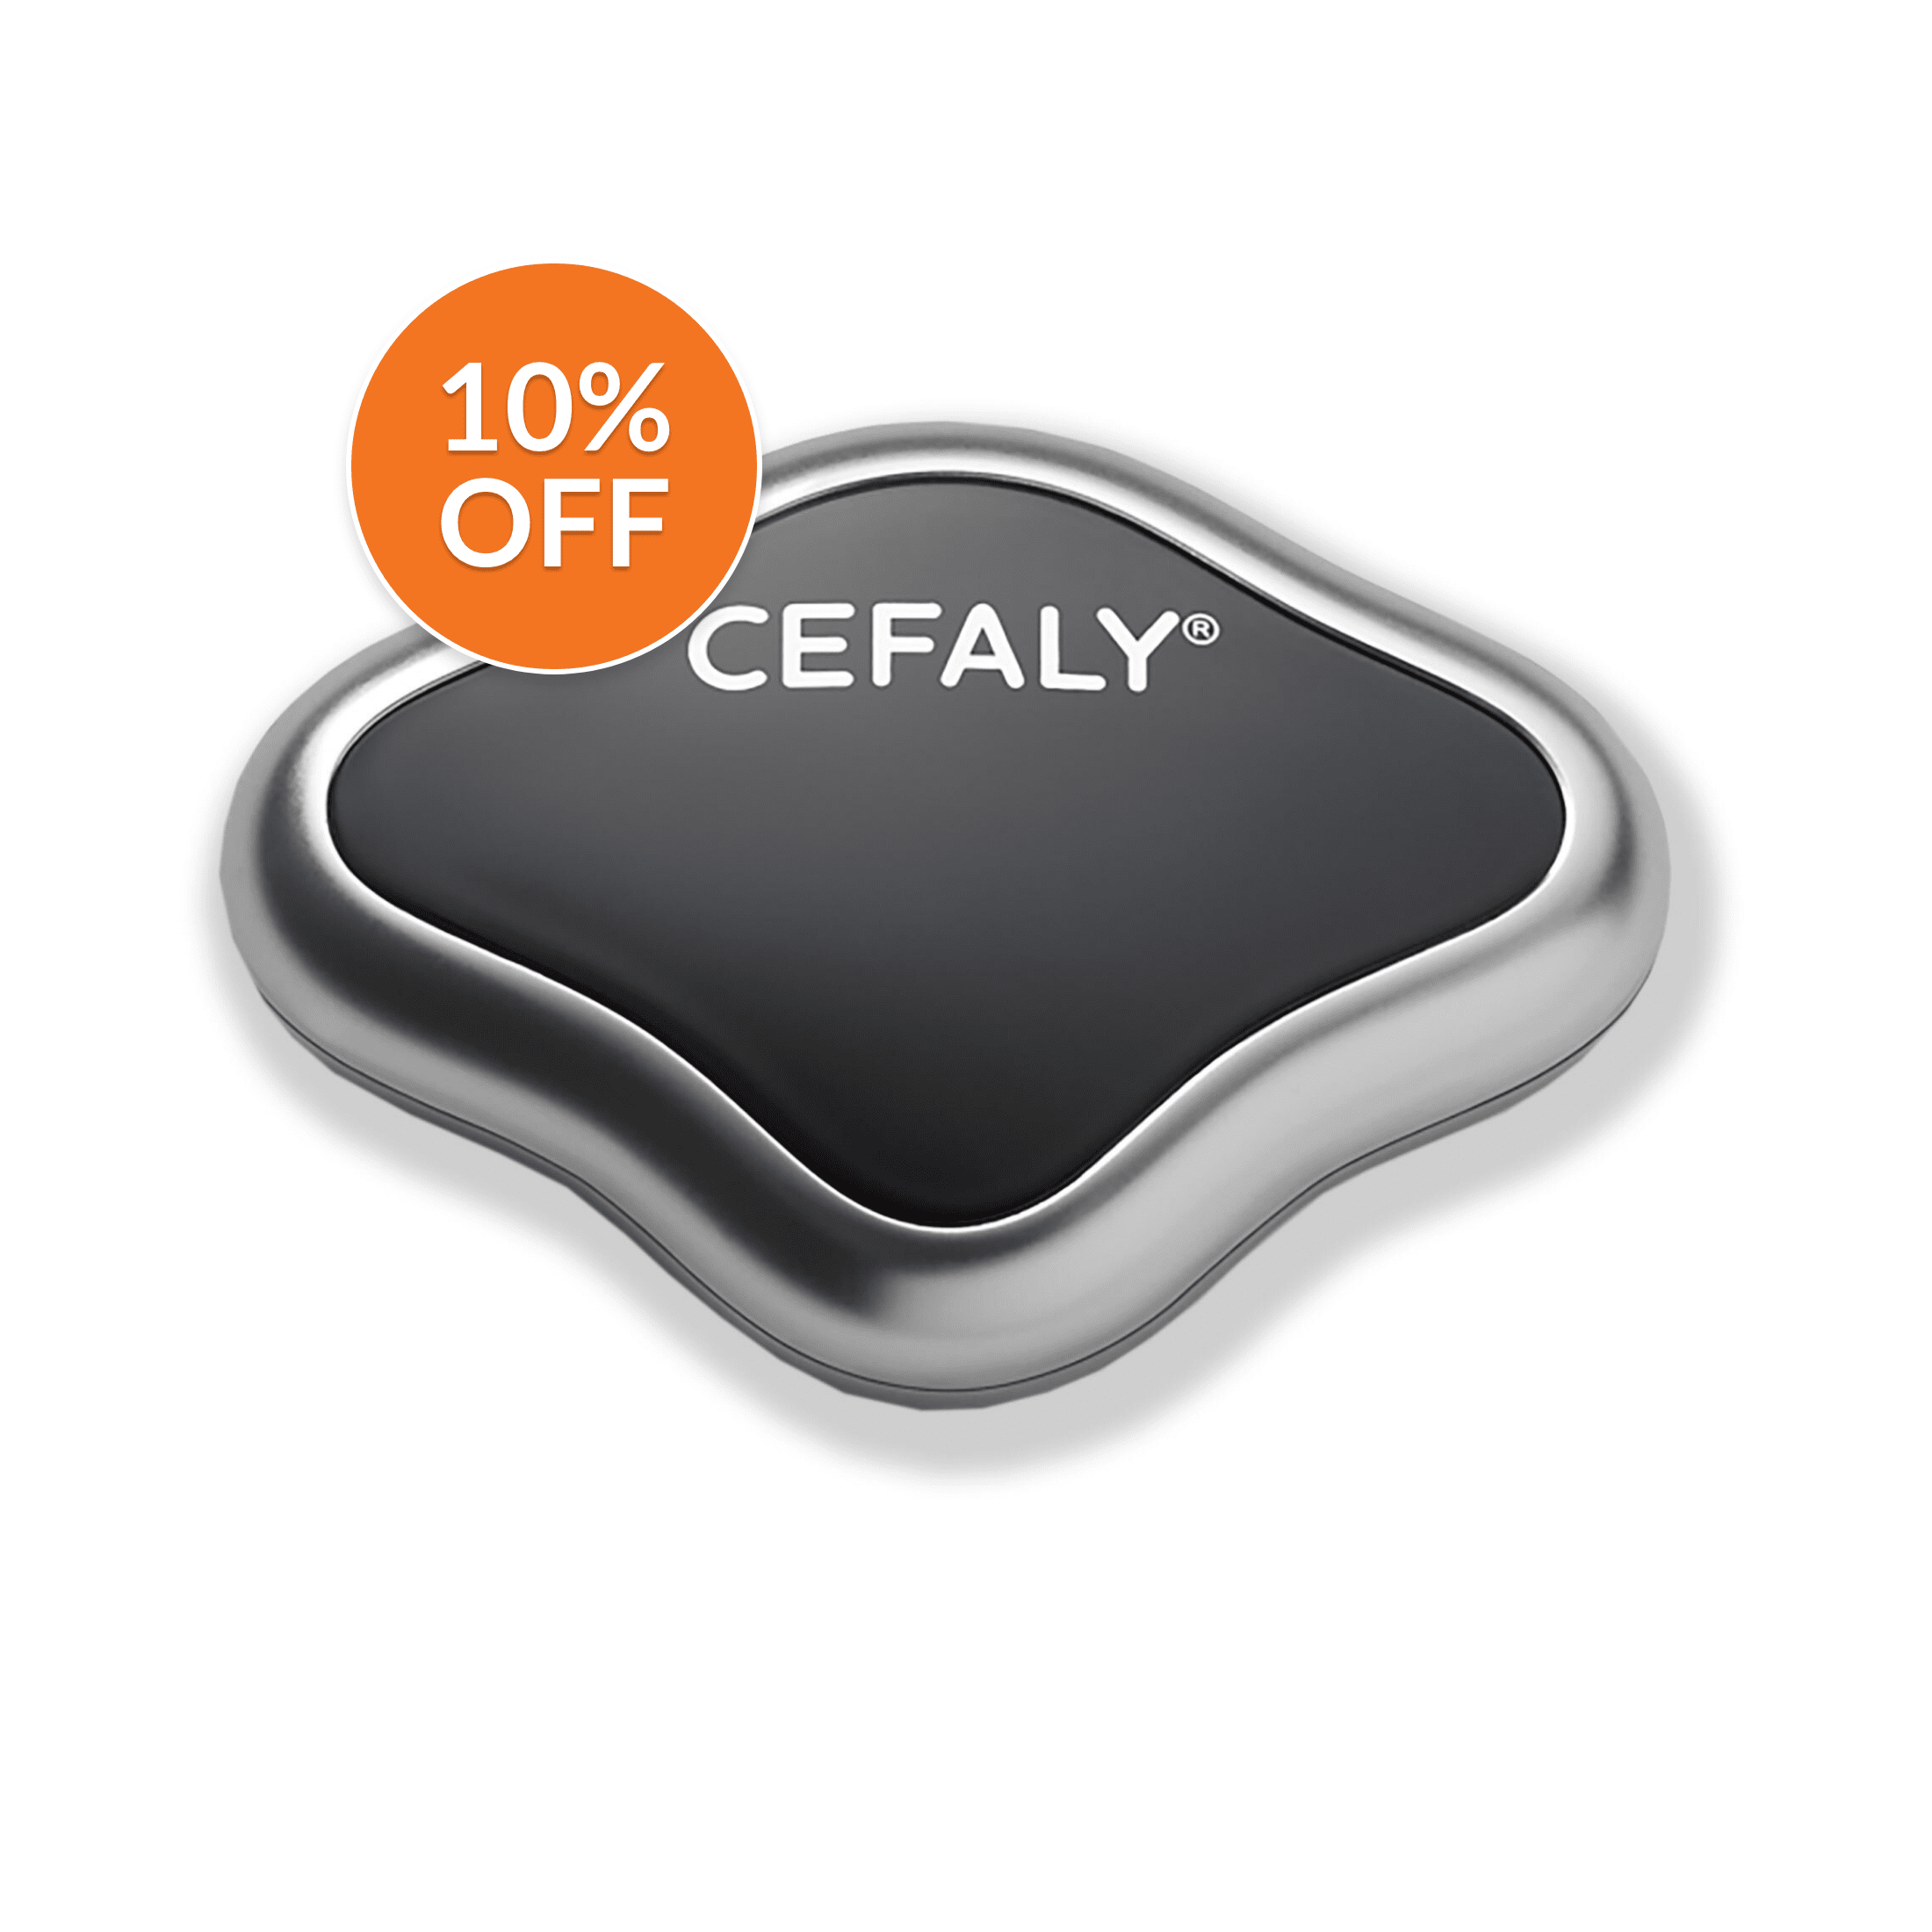 What is included with the Cefaly Migraine treatment and prevention device  1